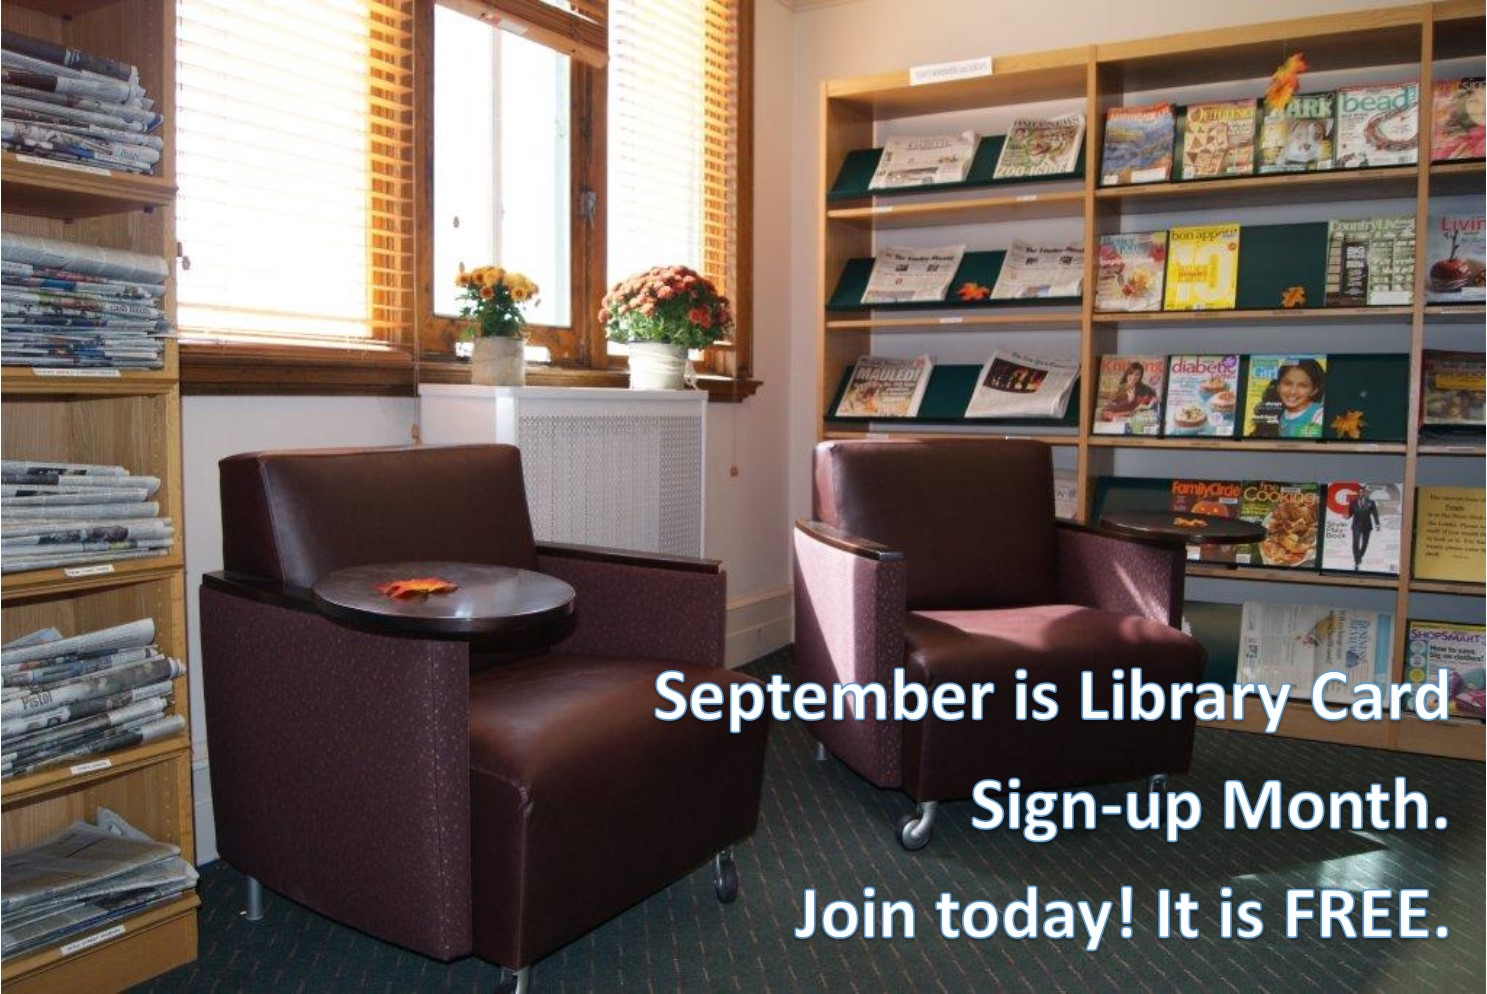 Library Card signup month 2018.jpg